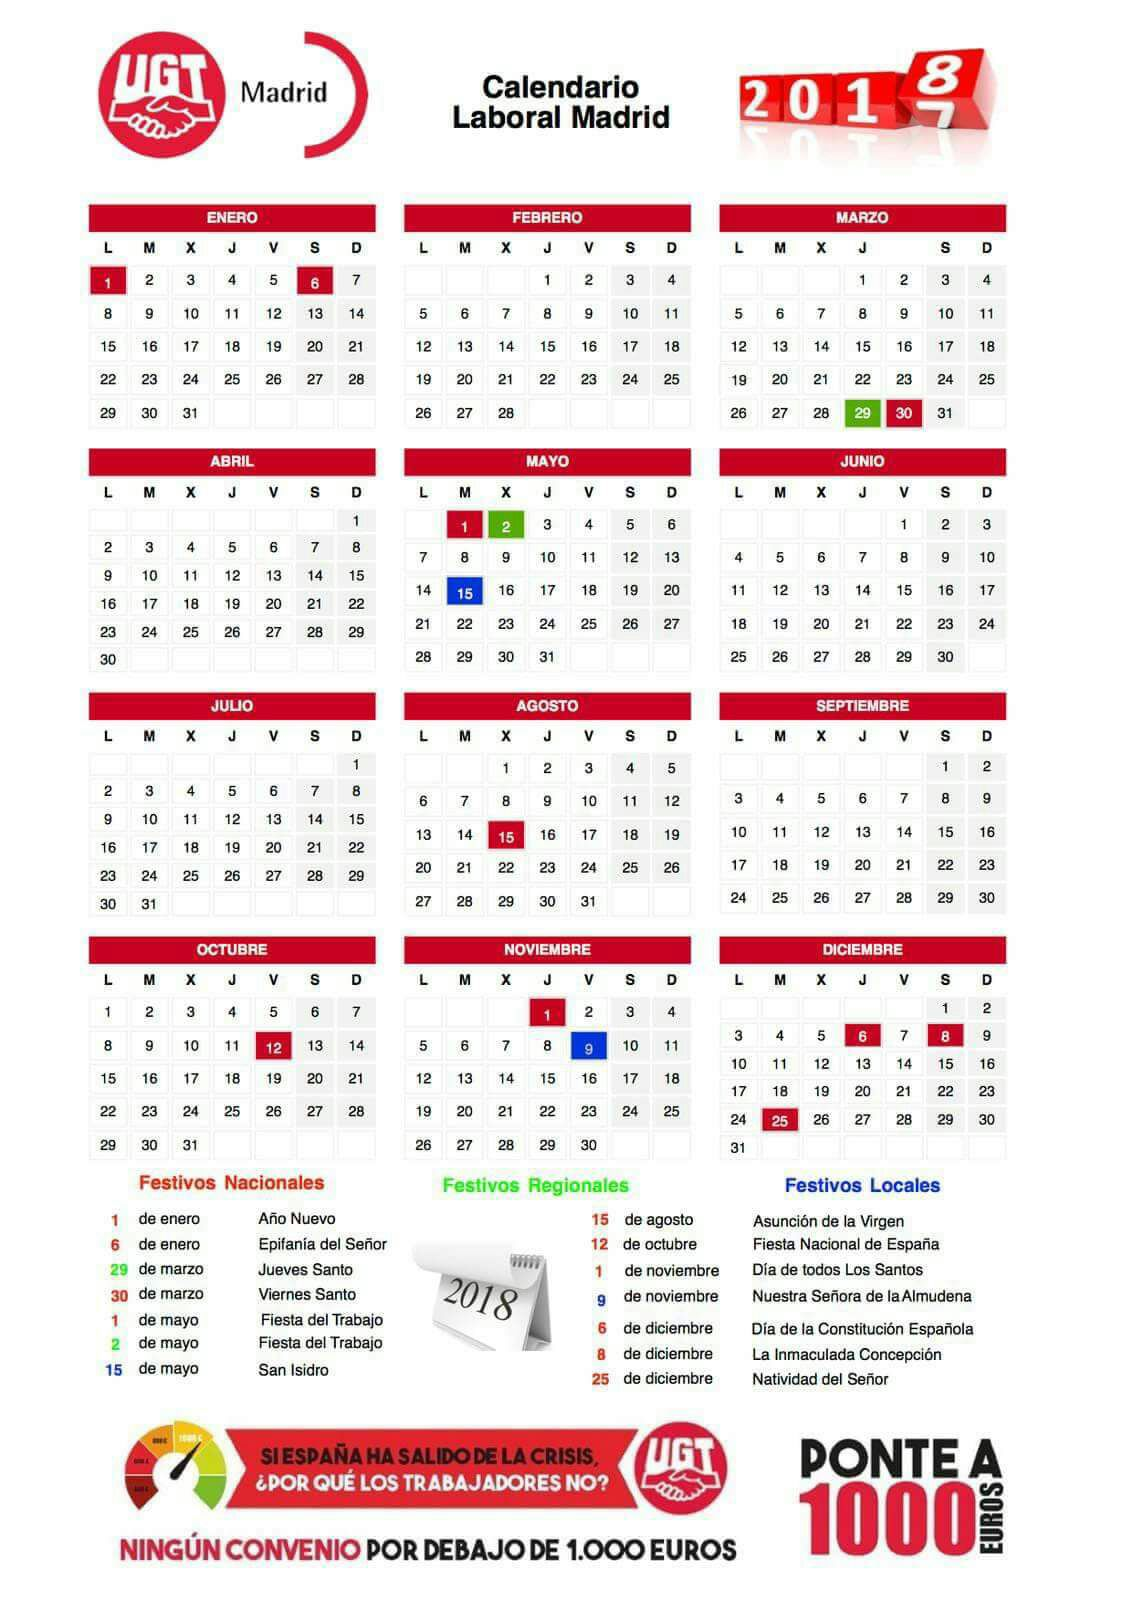 Calendario laboral 2018 humanes de madrid kalentri 2018 for Calendario eventos madrid